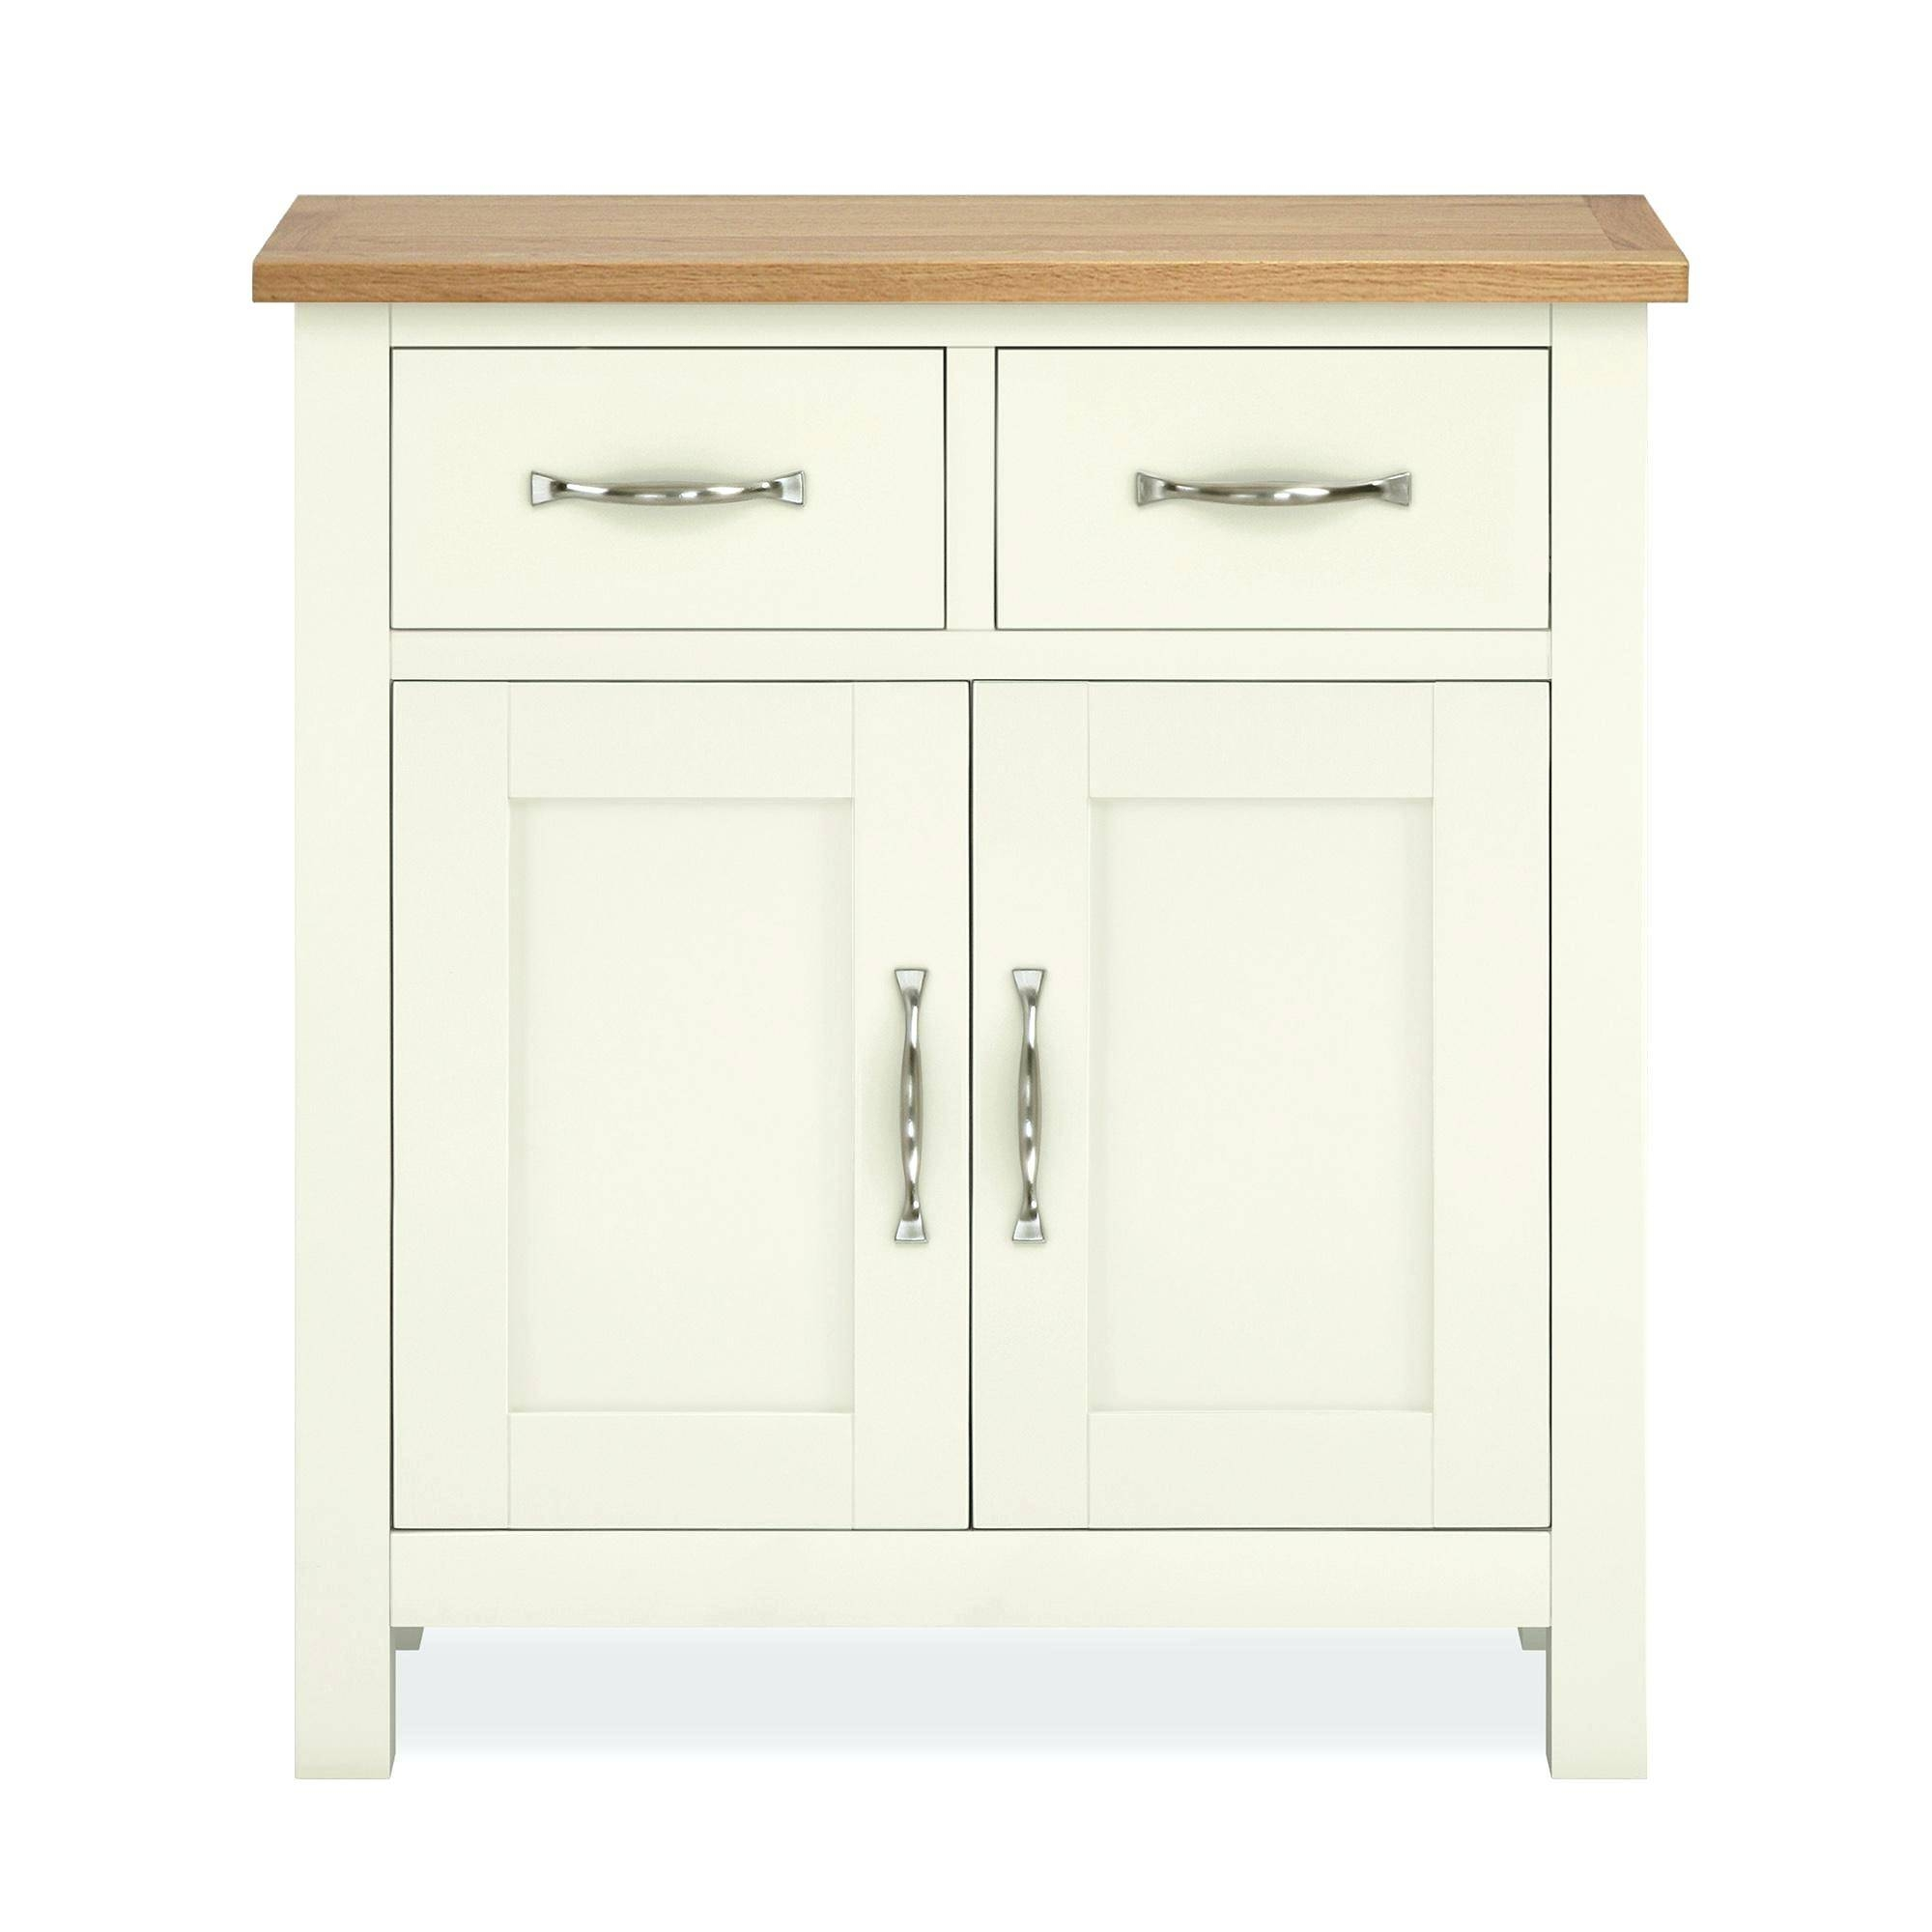 Cream Sideboard Sideboard With Drawers In Cream For Living Room With Regard To Newest Sideboards With Drawers (#7 of 15)